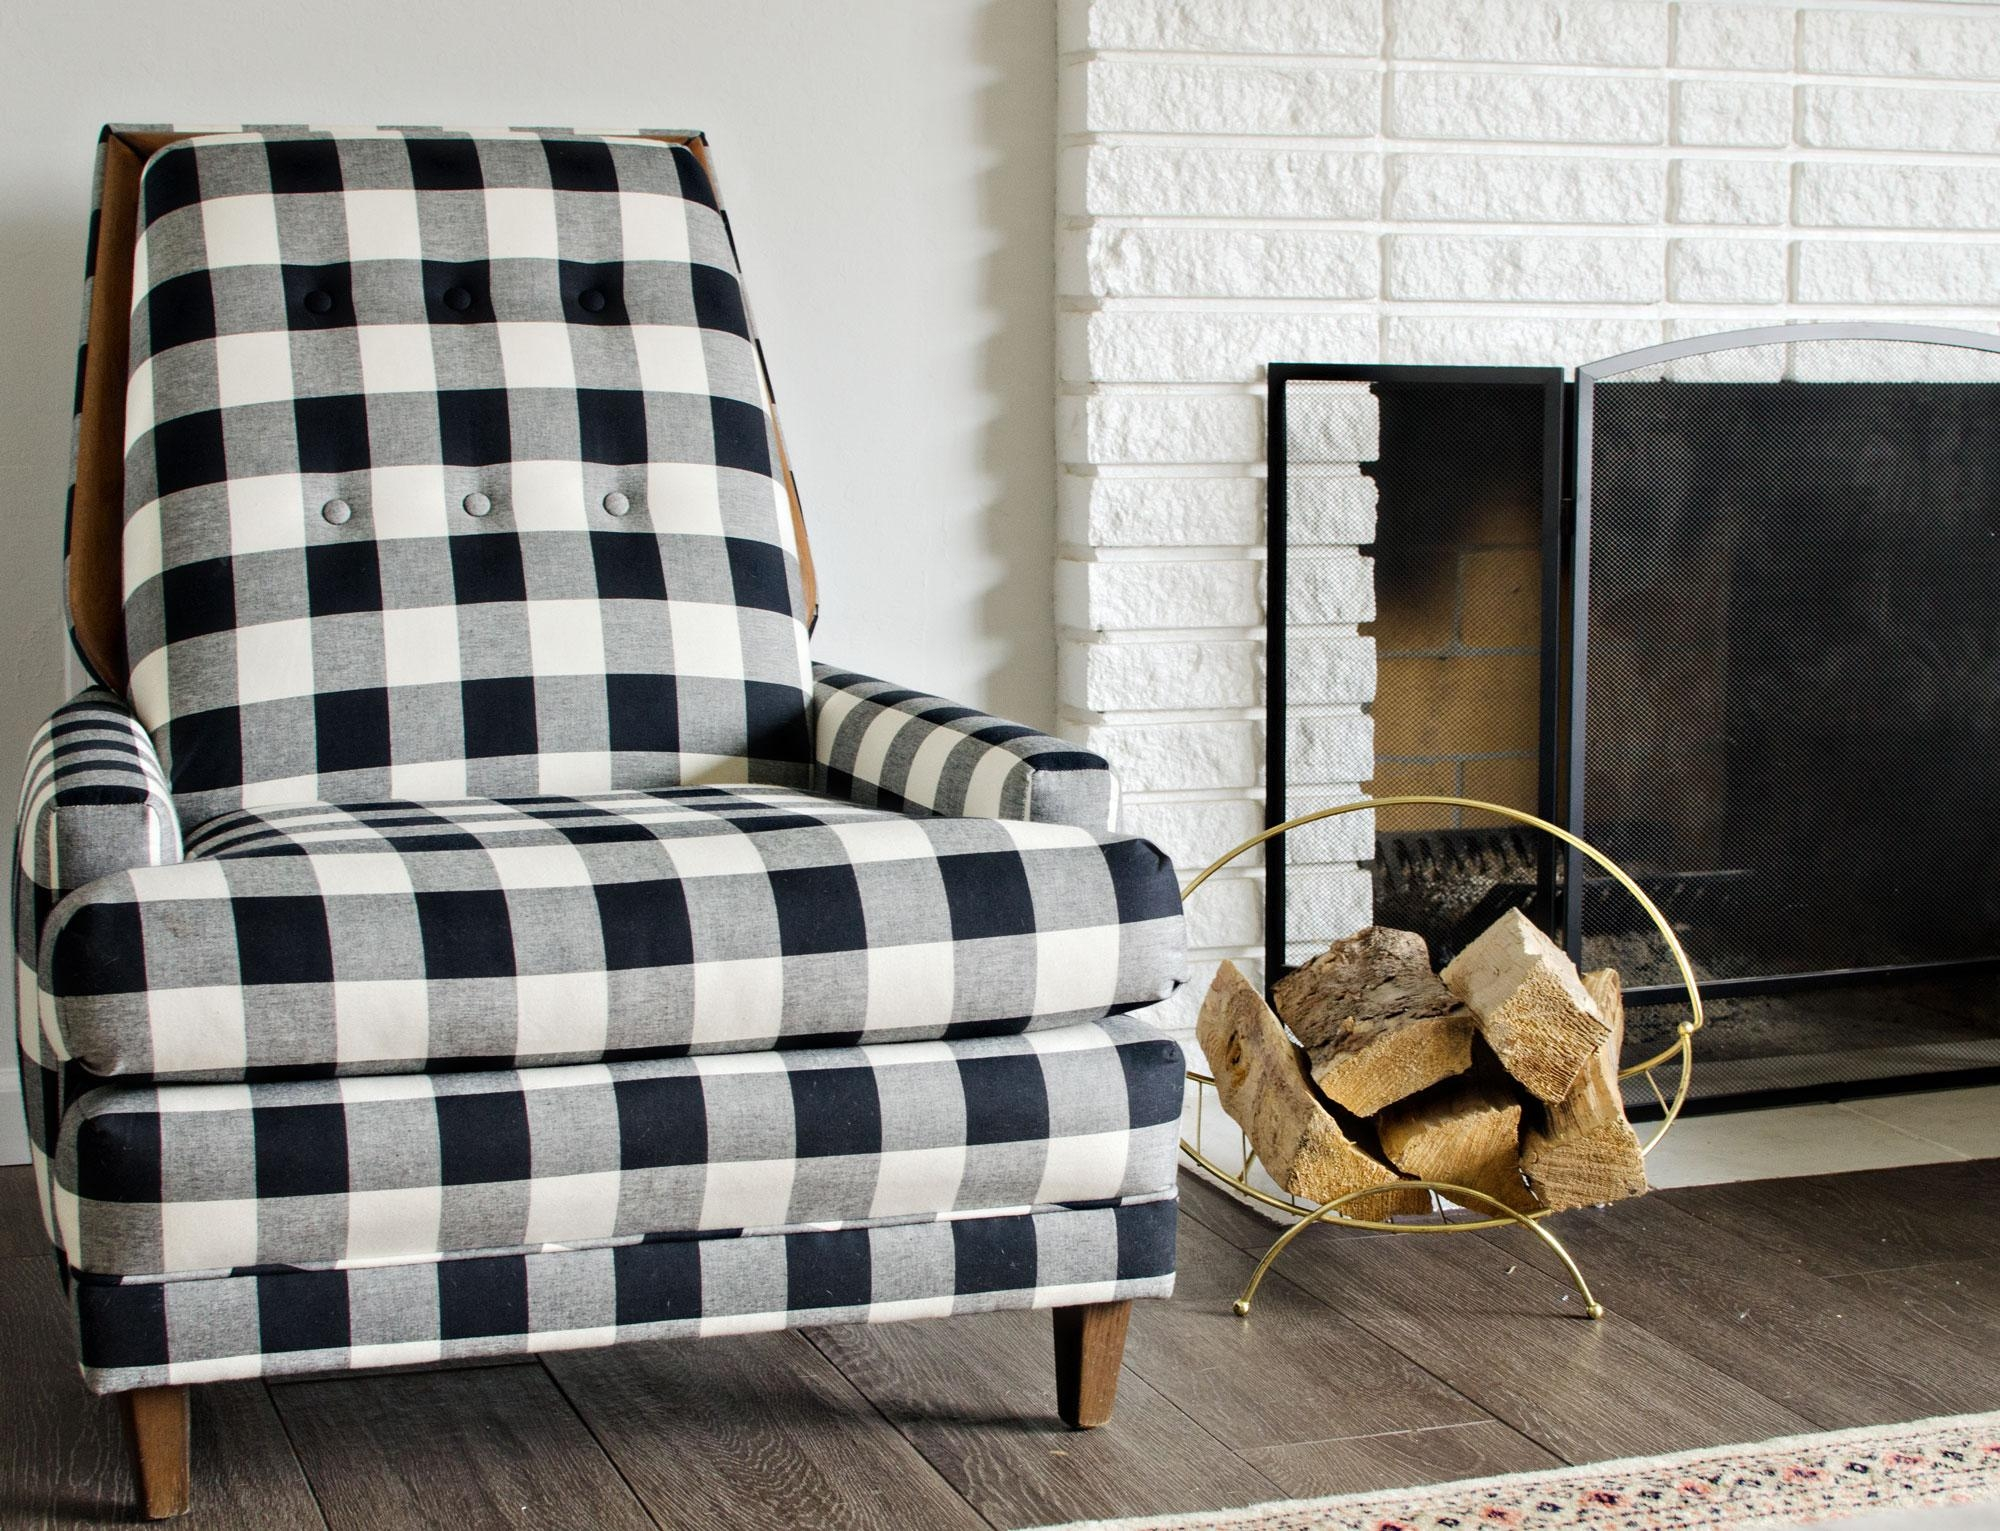 Black & White Buffalo Check Chairs – The Vintage Rug Shop The Within Buffalo Check Sofas (Image 7 of 20)